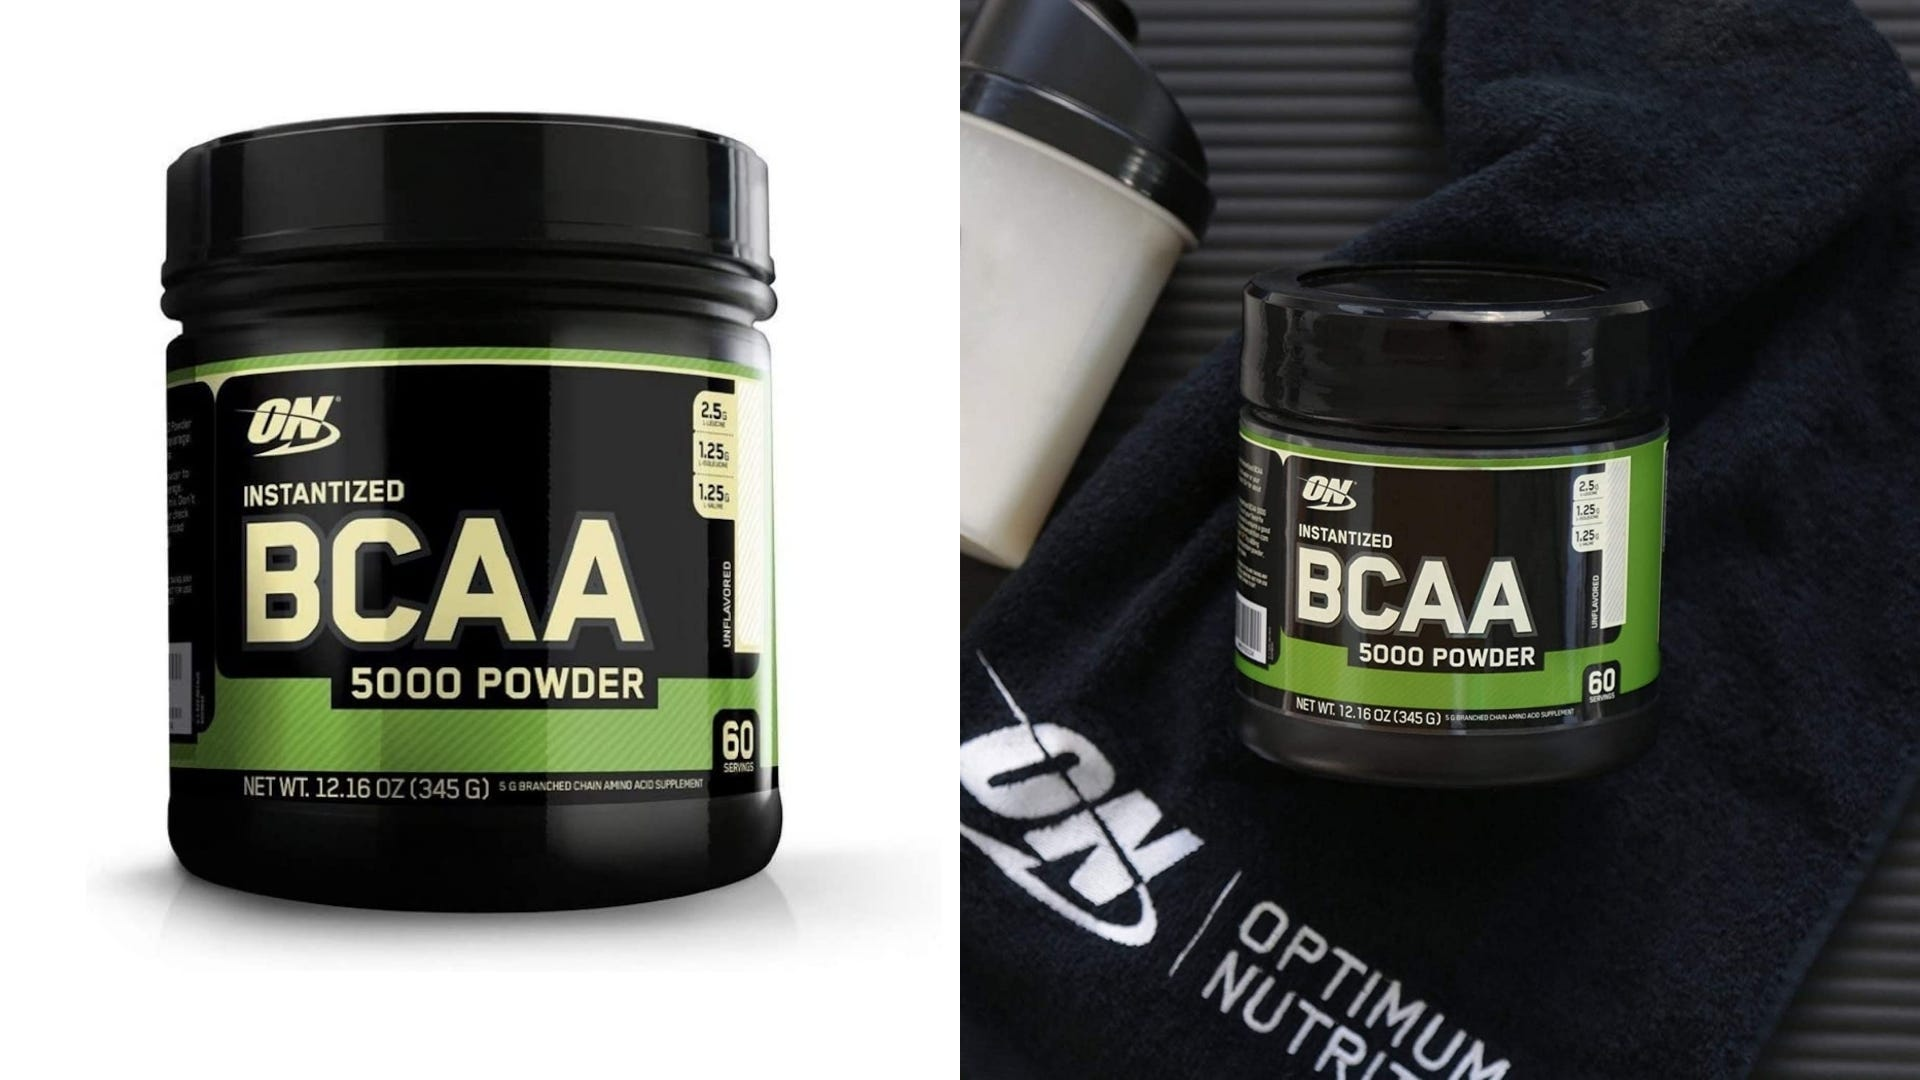 A black container of BCAA powder on a white background and the container on a black mat.